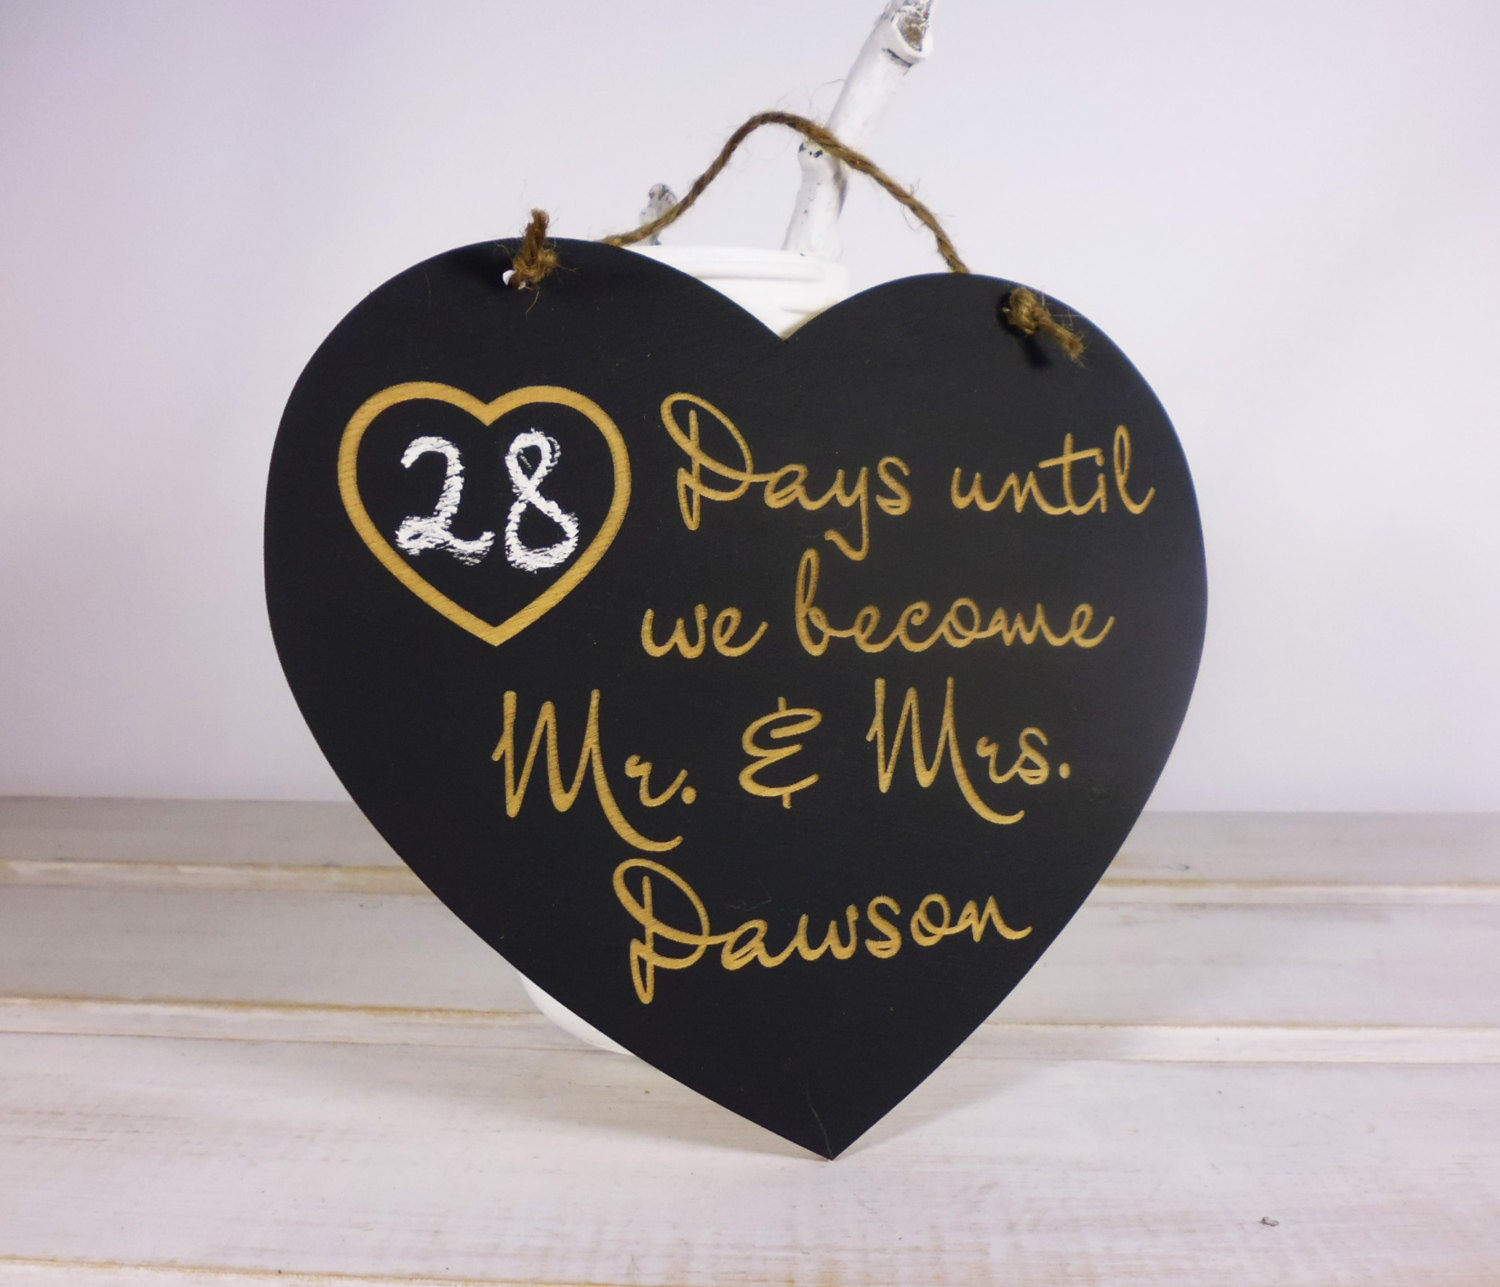 Wedding Countdown Gifts For Bride: Personalized Engagement Gift Prop Wedding Countdown Chalkboard